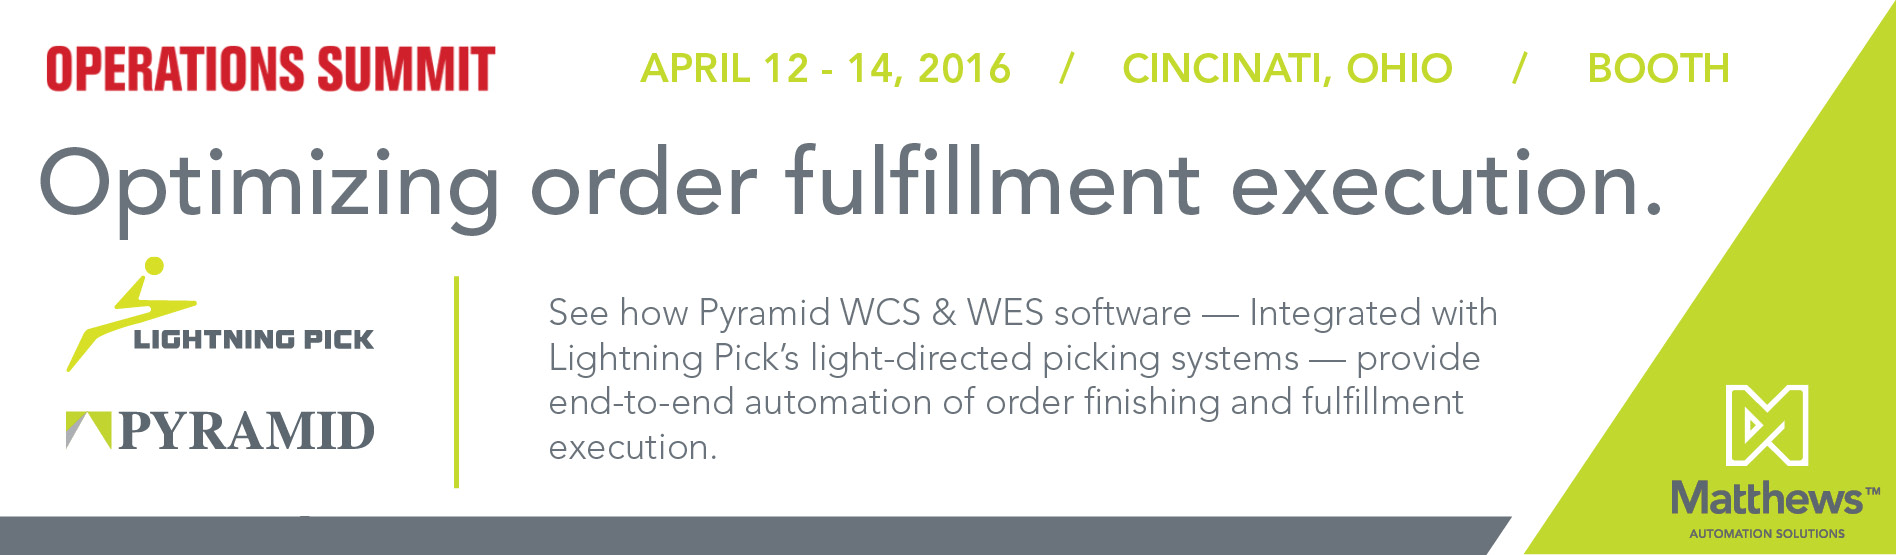 See Lightning Pick, Pyramid's Optimized Order Fulfillment Solutions at Operations Summit.